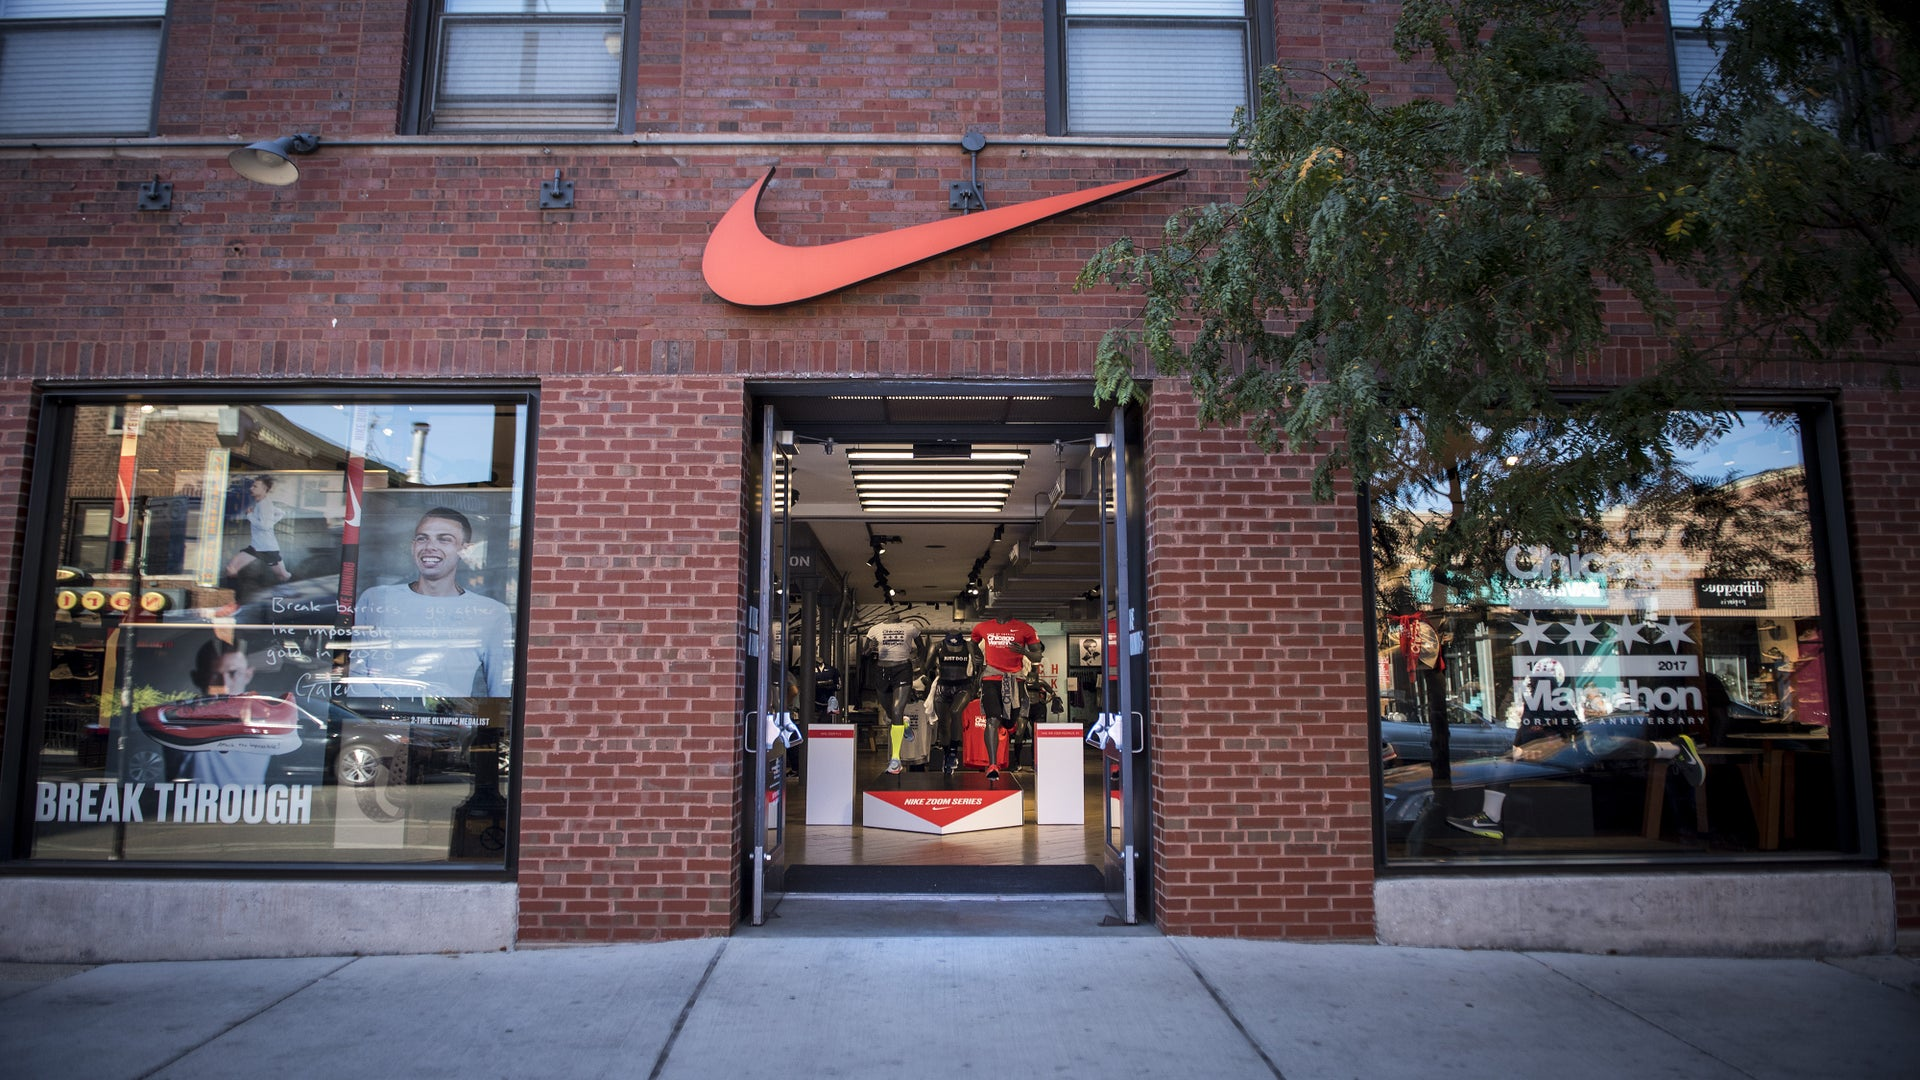 Fake Nike Coupon With Colin Kaepernick Campaign Slogan Offers Huge Discount 'For People Of Color'